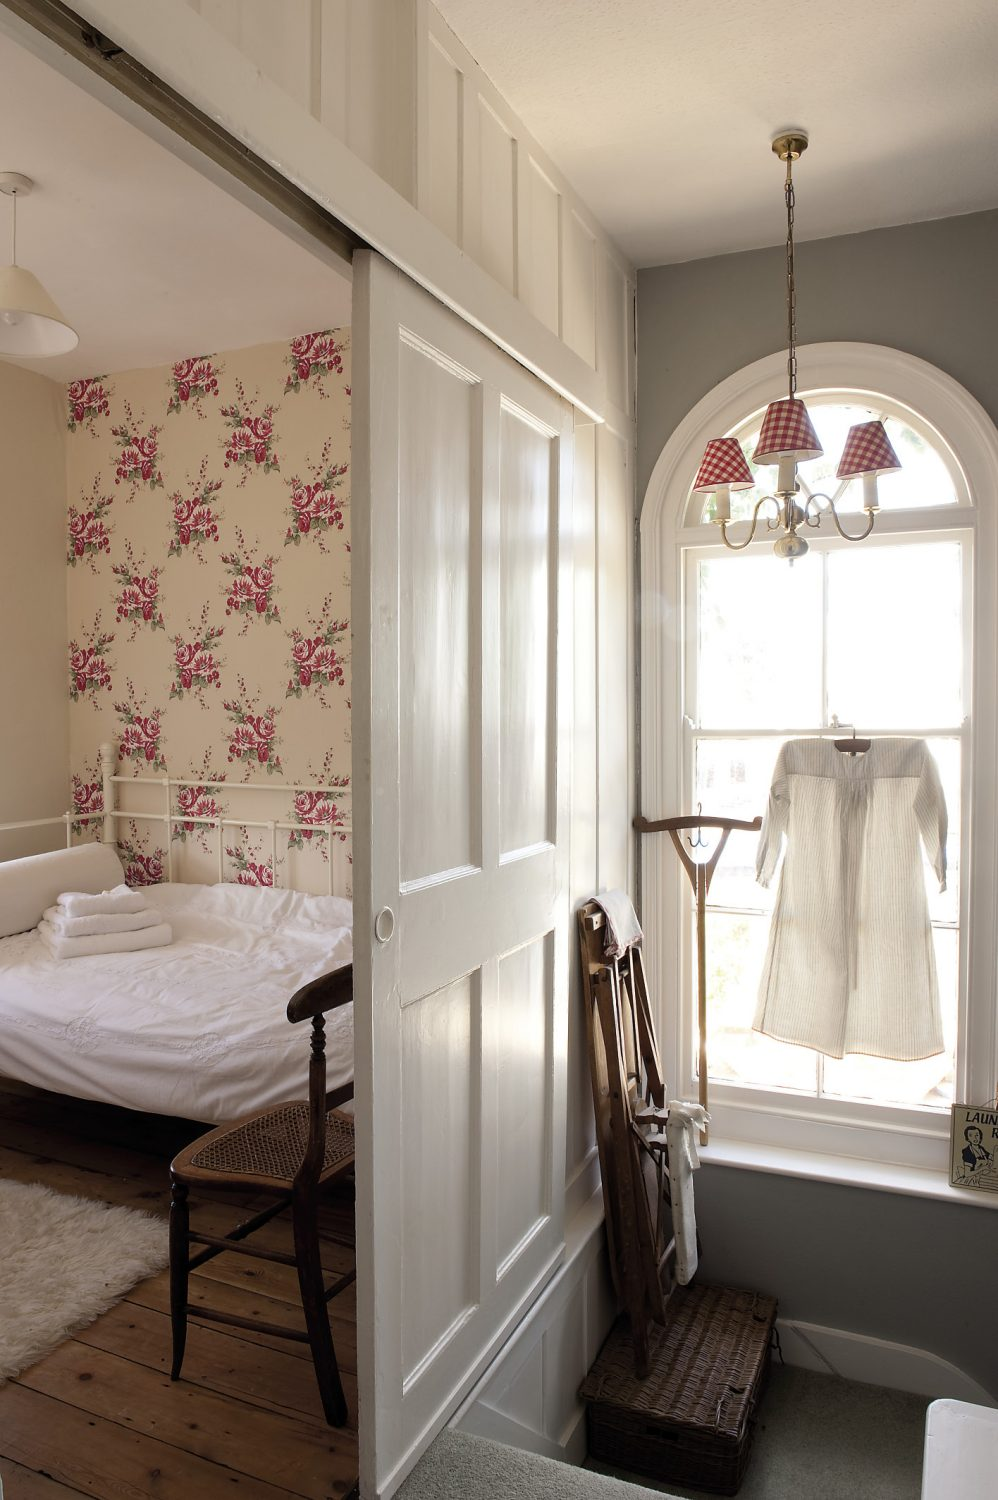 Just across the corridor, behind a sliding door and tucked away in the tower, is a small wood-panelled bedroom that's very popular with visiting children. There is an iron daybed and the wall behind it is papered with jolly, striped red and white roses...